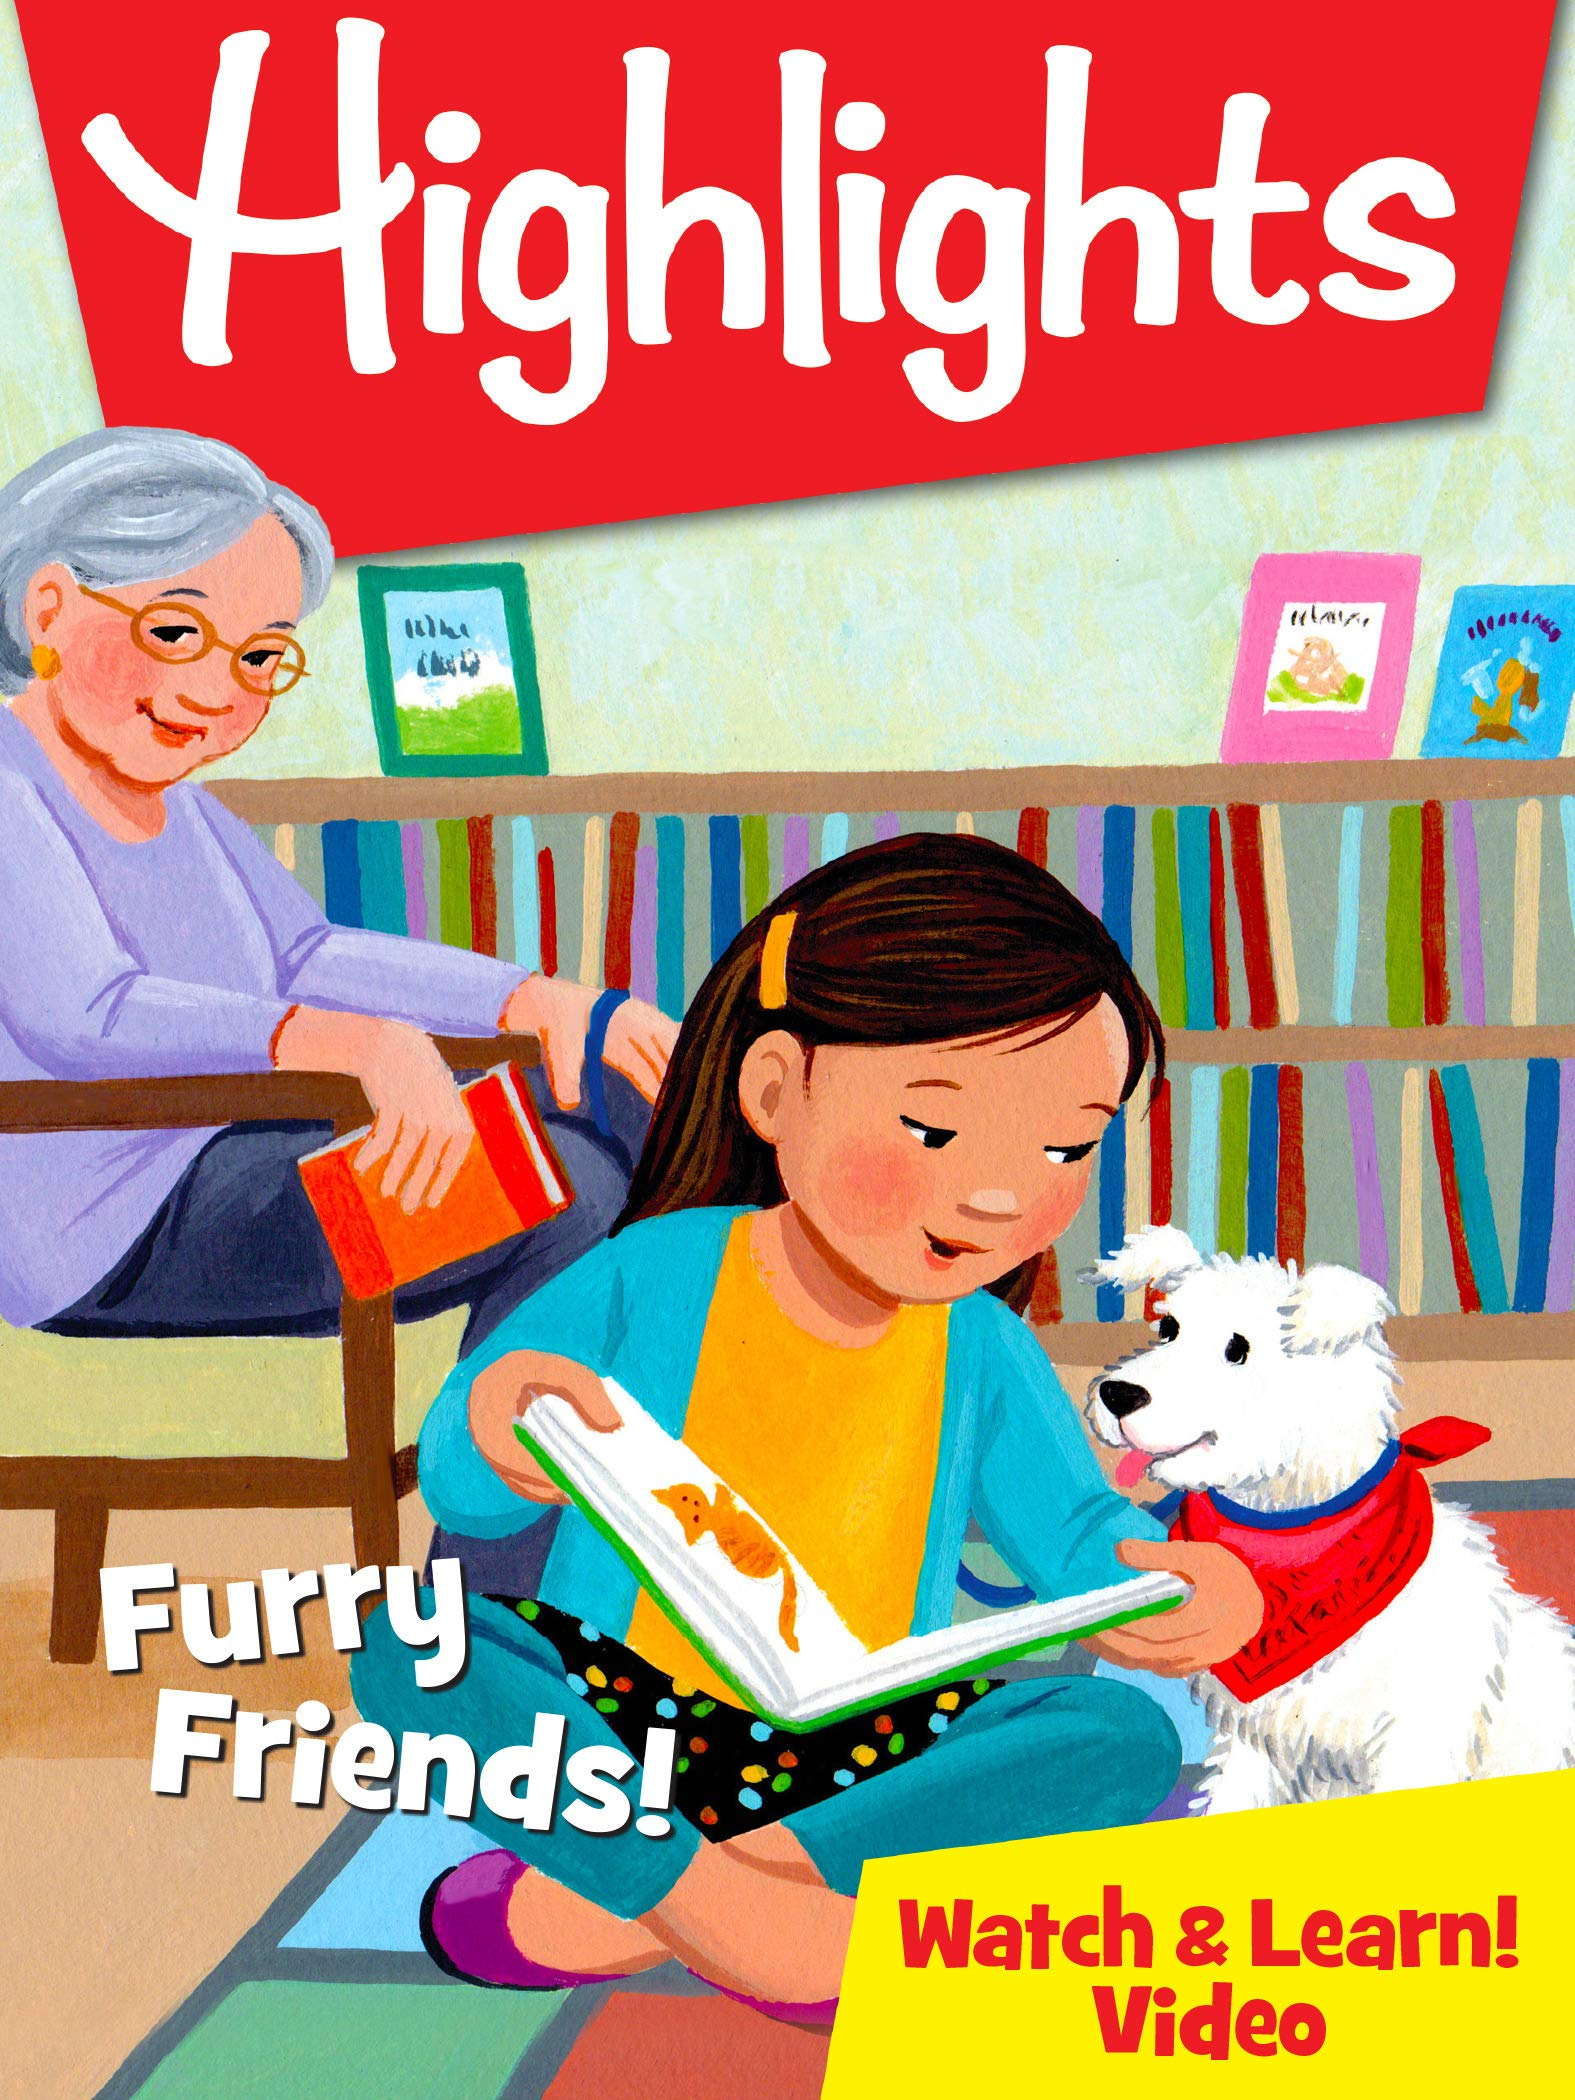 Highlights - Furry Friends! on Amazon Prime Video UK